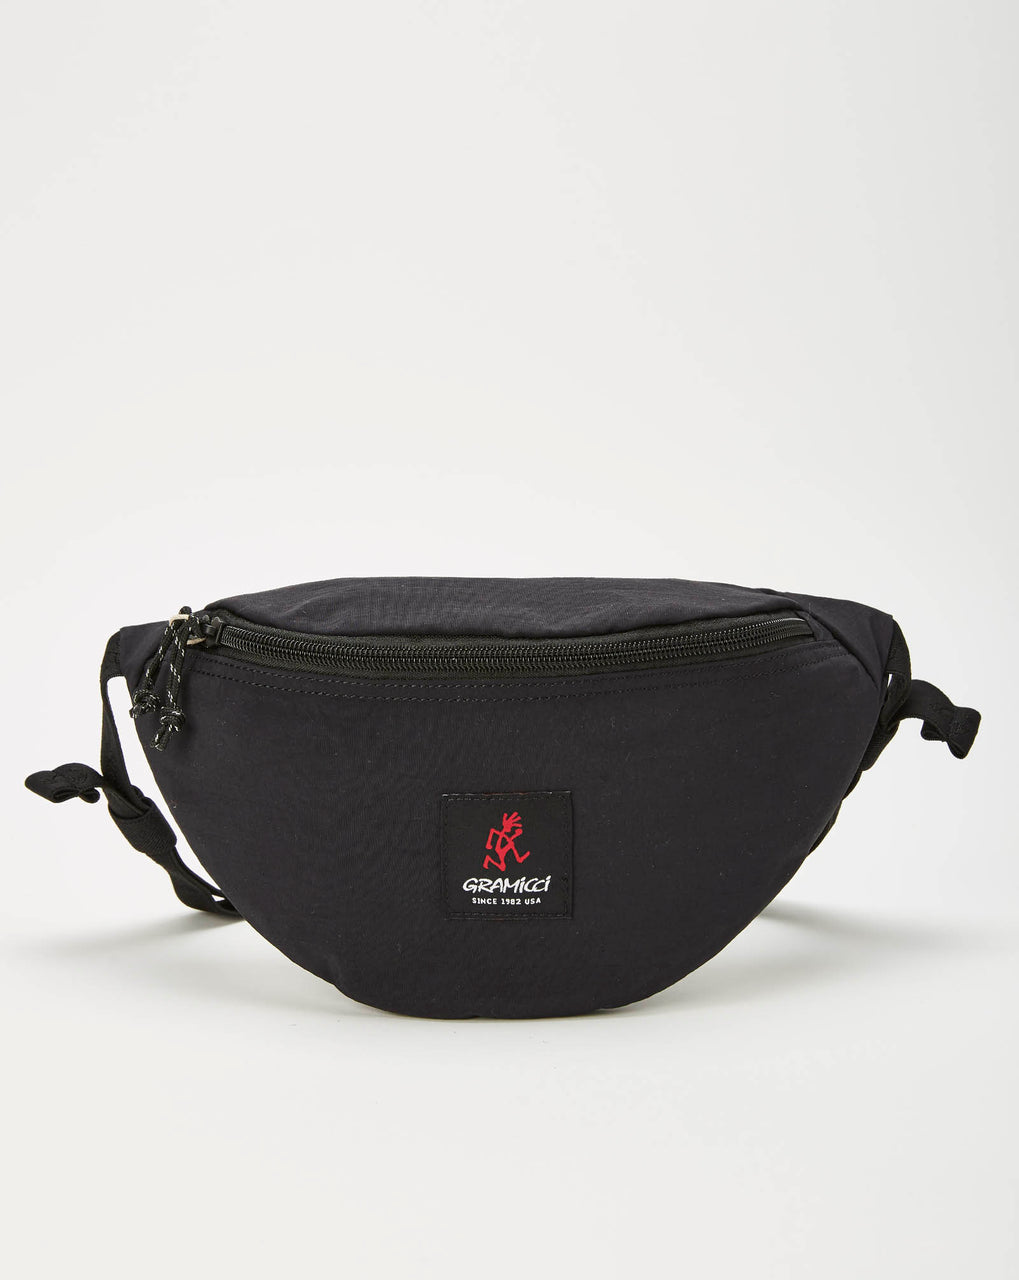 Gramicci Waist Bag (Black)